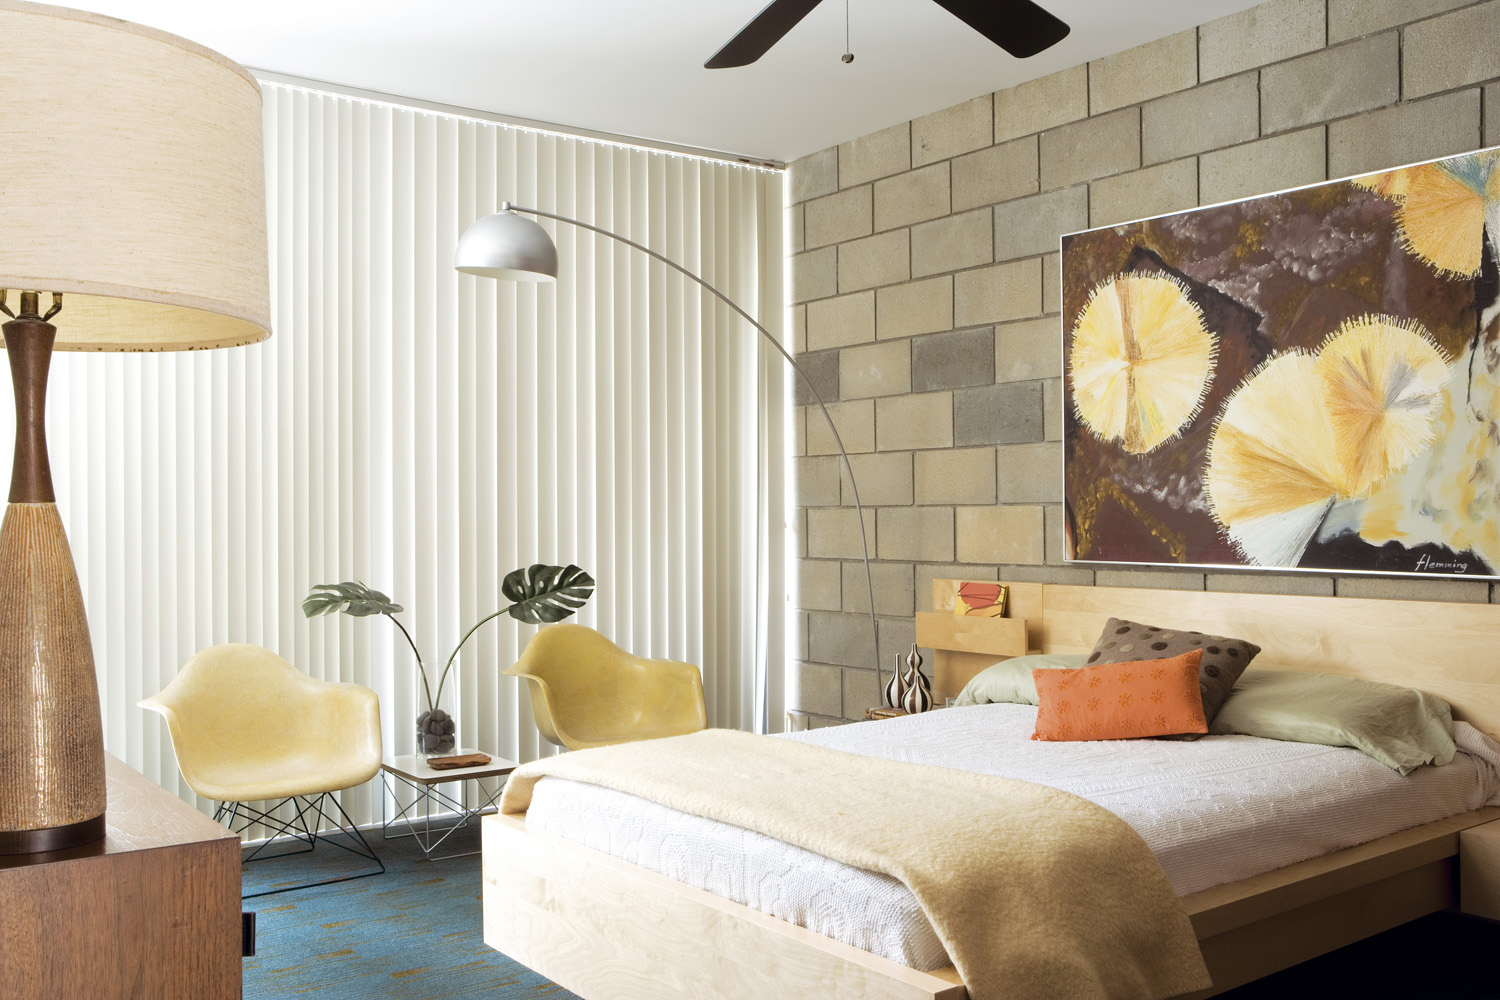 Mellow Yellow: The brutalist brick wall in the guest bedroom is softened with the addition of yellow Eames armchairs and a vibrant abstract painting. A vintage lamp towers above a dinky Eames 'LTR' table and a 'Credenza' cabinet by Florence Knoll